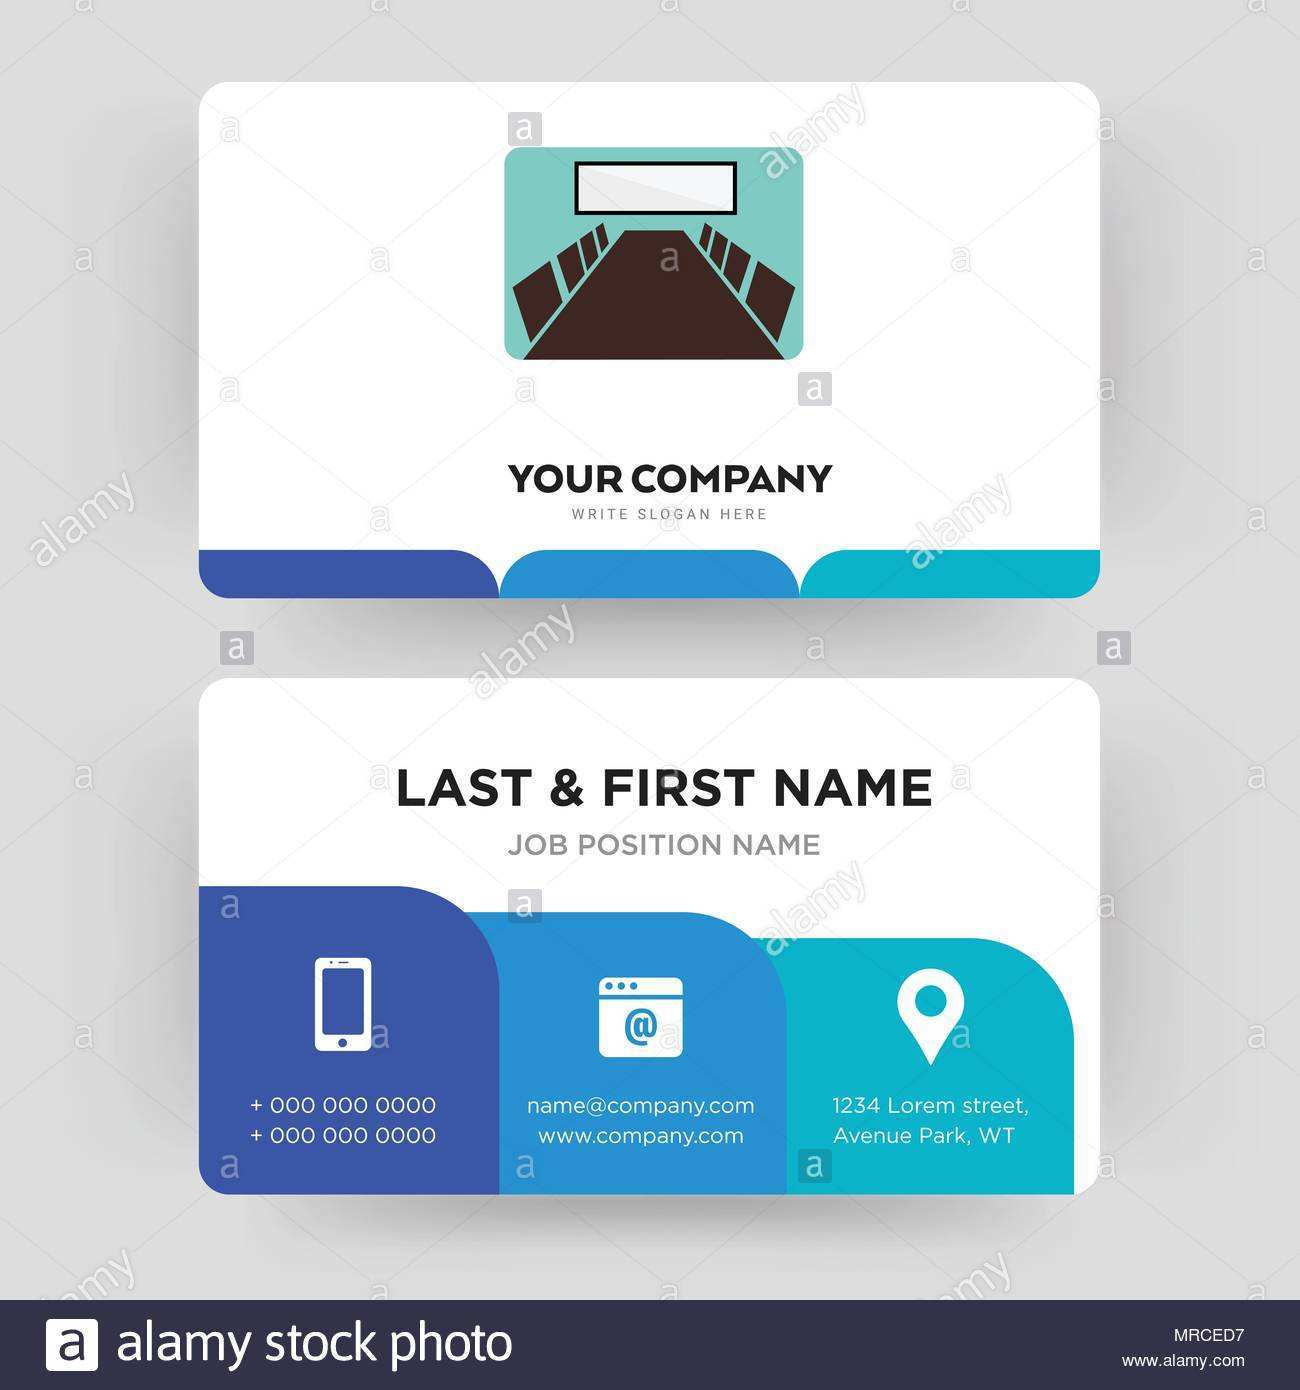 21 Adding Id Card Template For Conference Download with Id Card For Conference Id Card Template